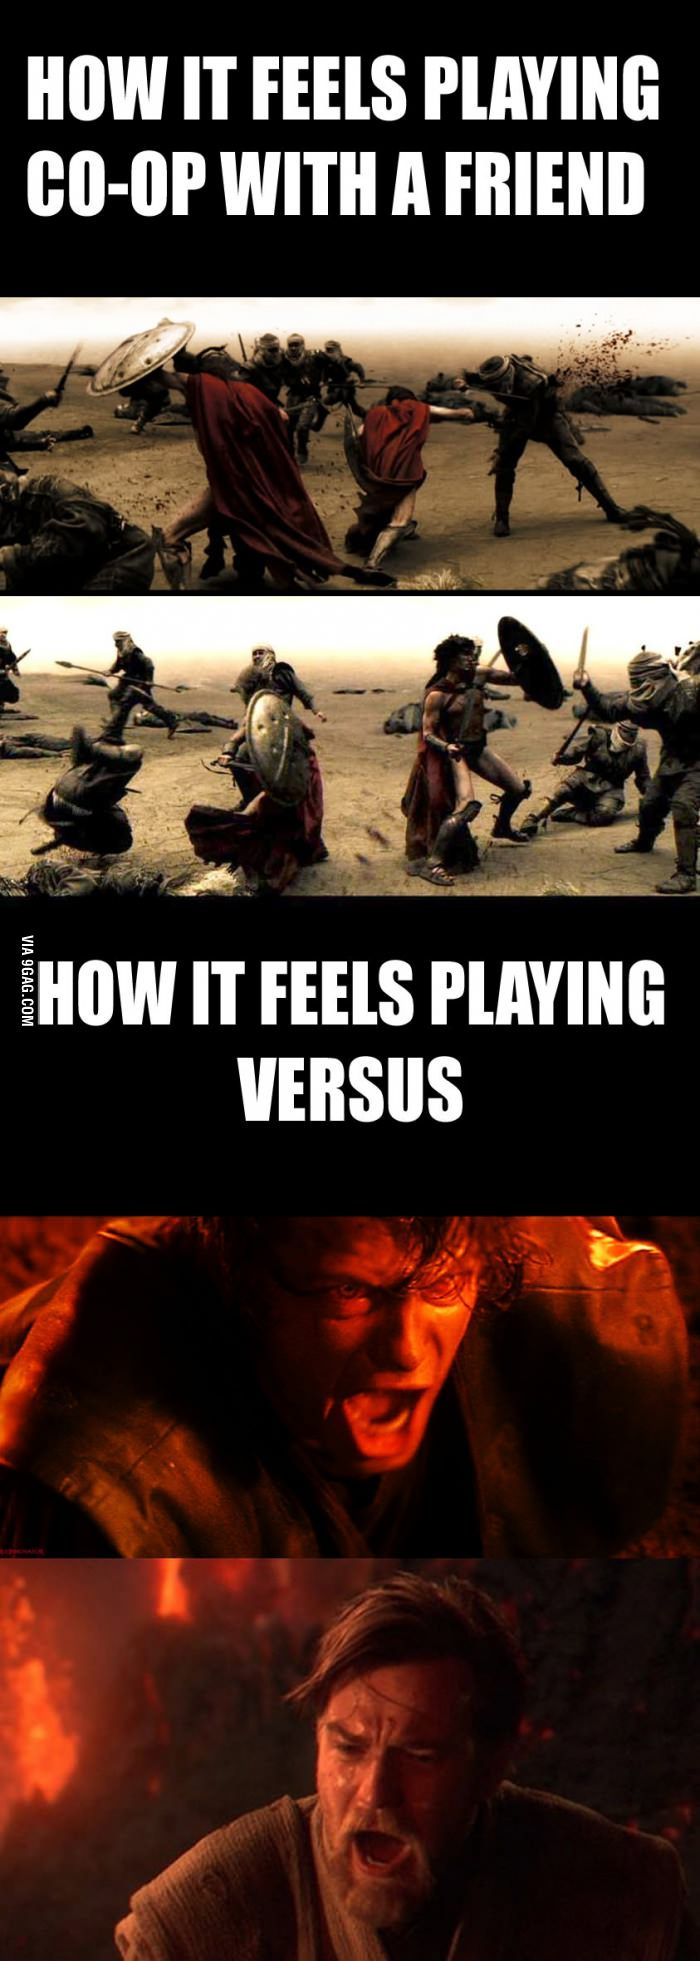 How Friendships End In Gaming Gaming Memes Video Games Funny Video Game Memes